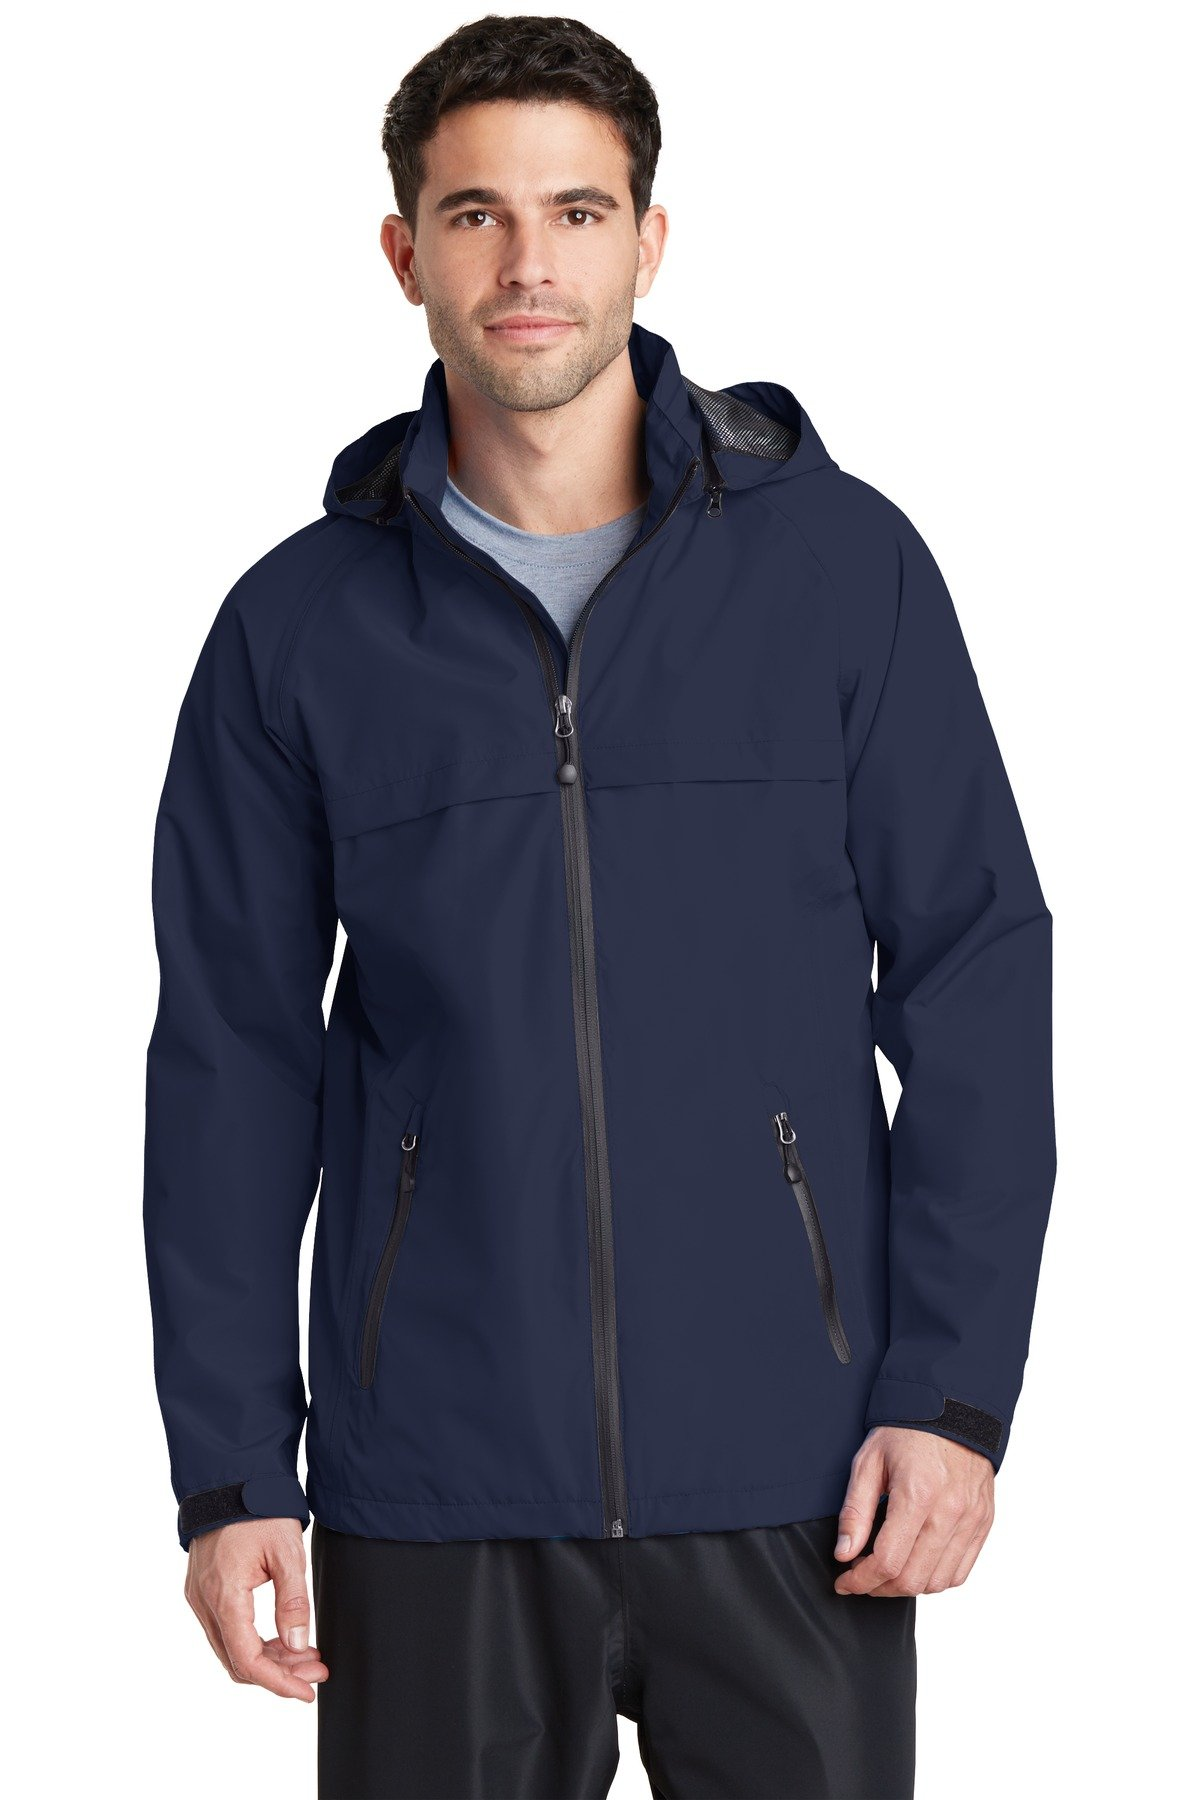 Port Authority Torrent Waterproof Jacket. J333 True Navy M